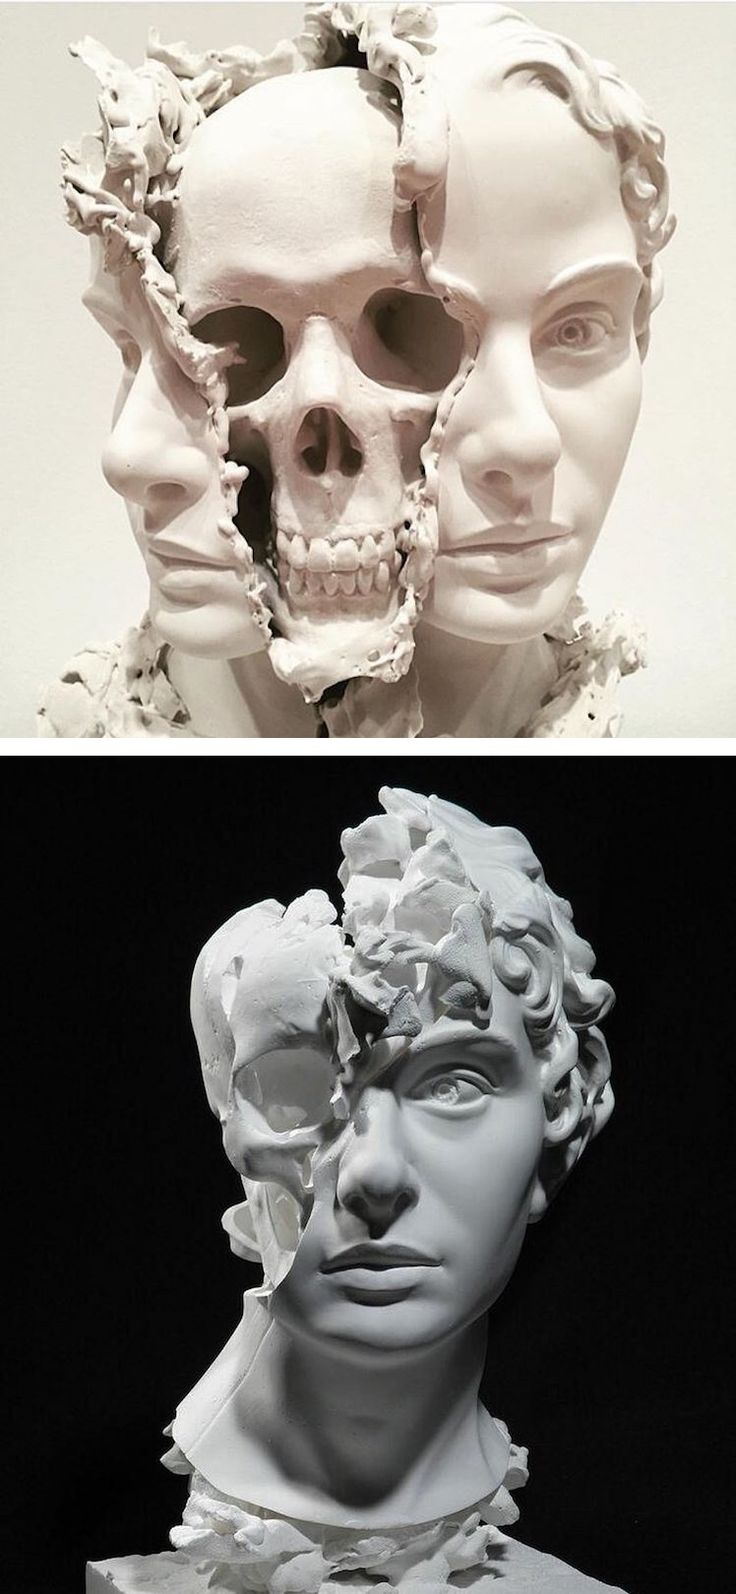 Thought-Provoking Sculpture of Split Head Reveals a Hauntingly Surreal Skull Within